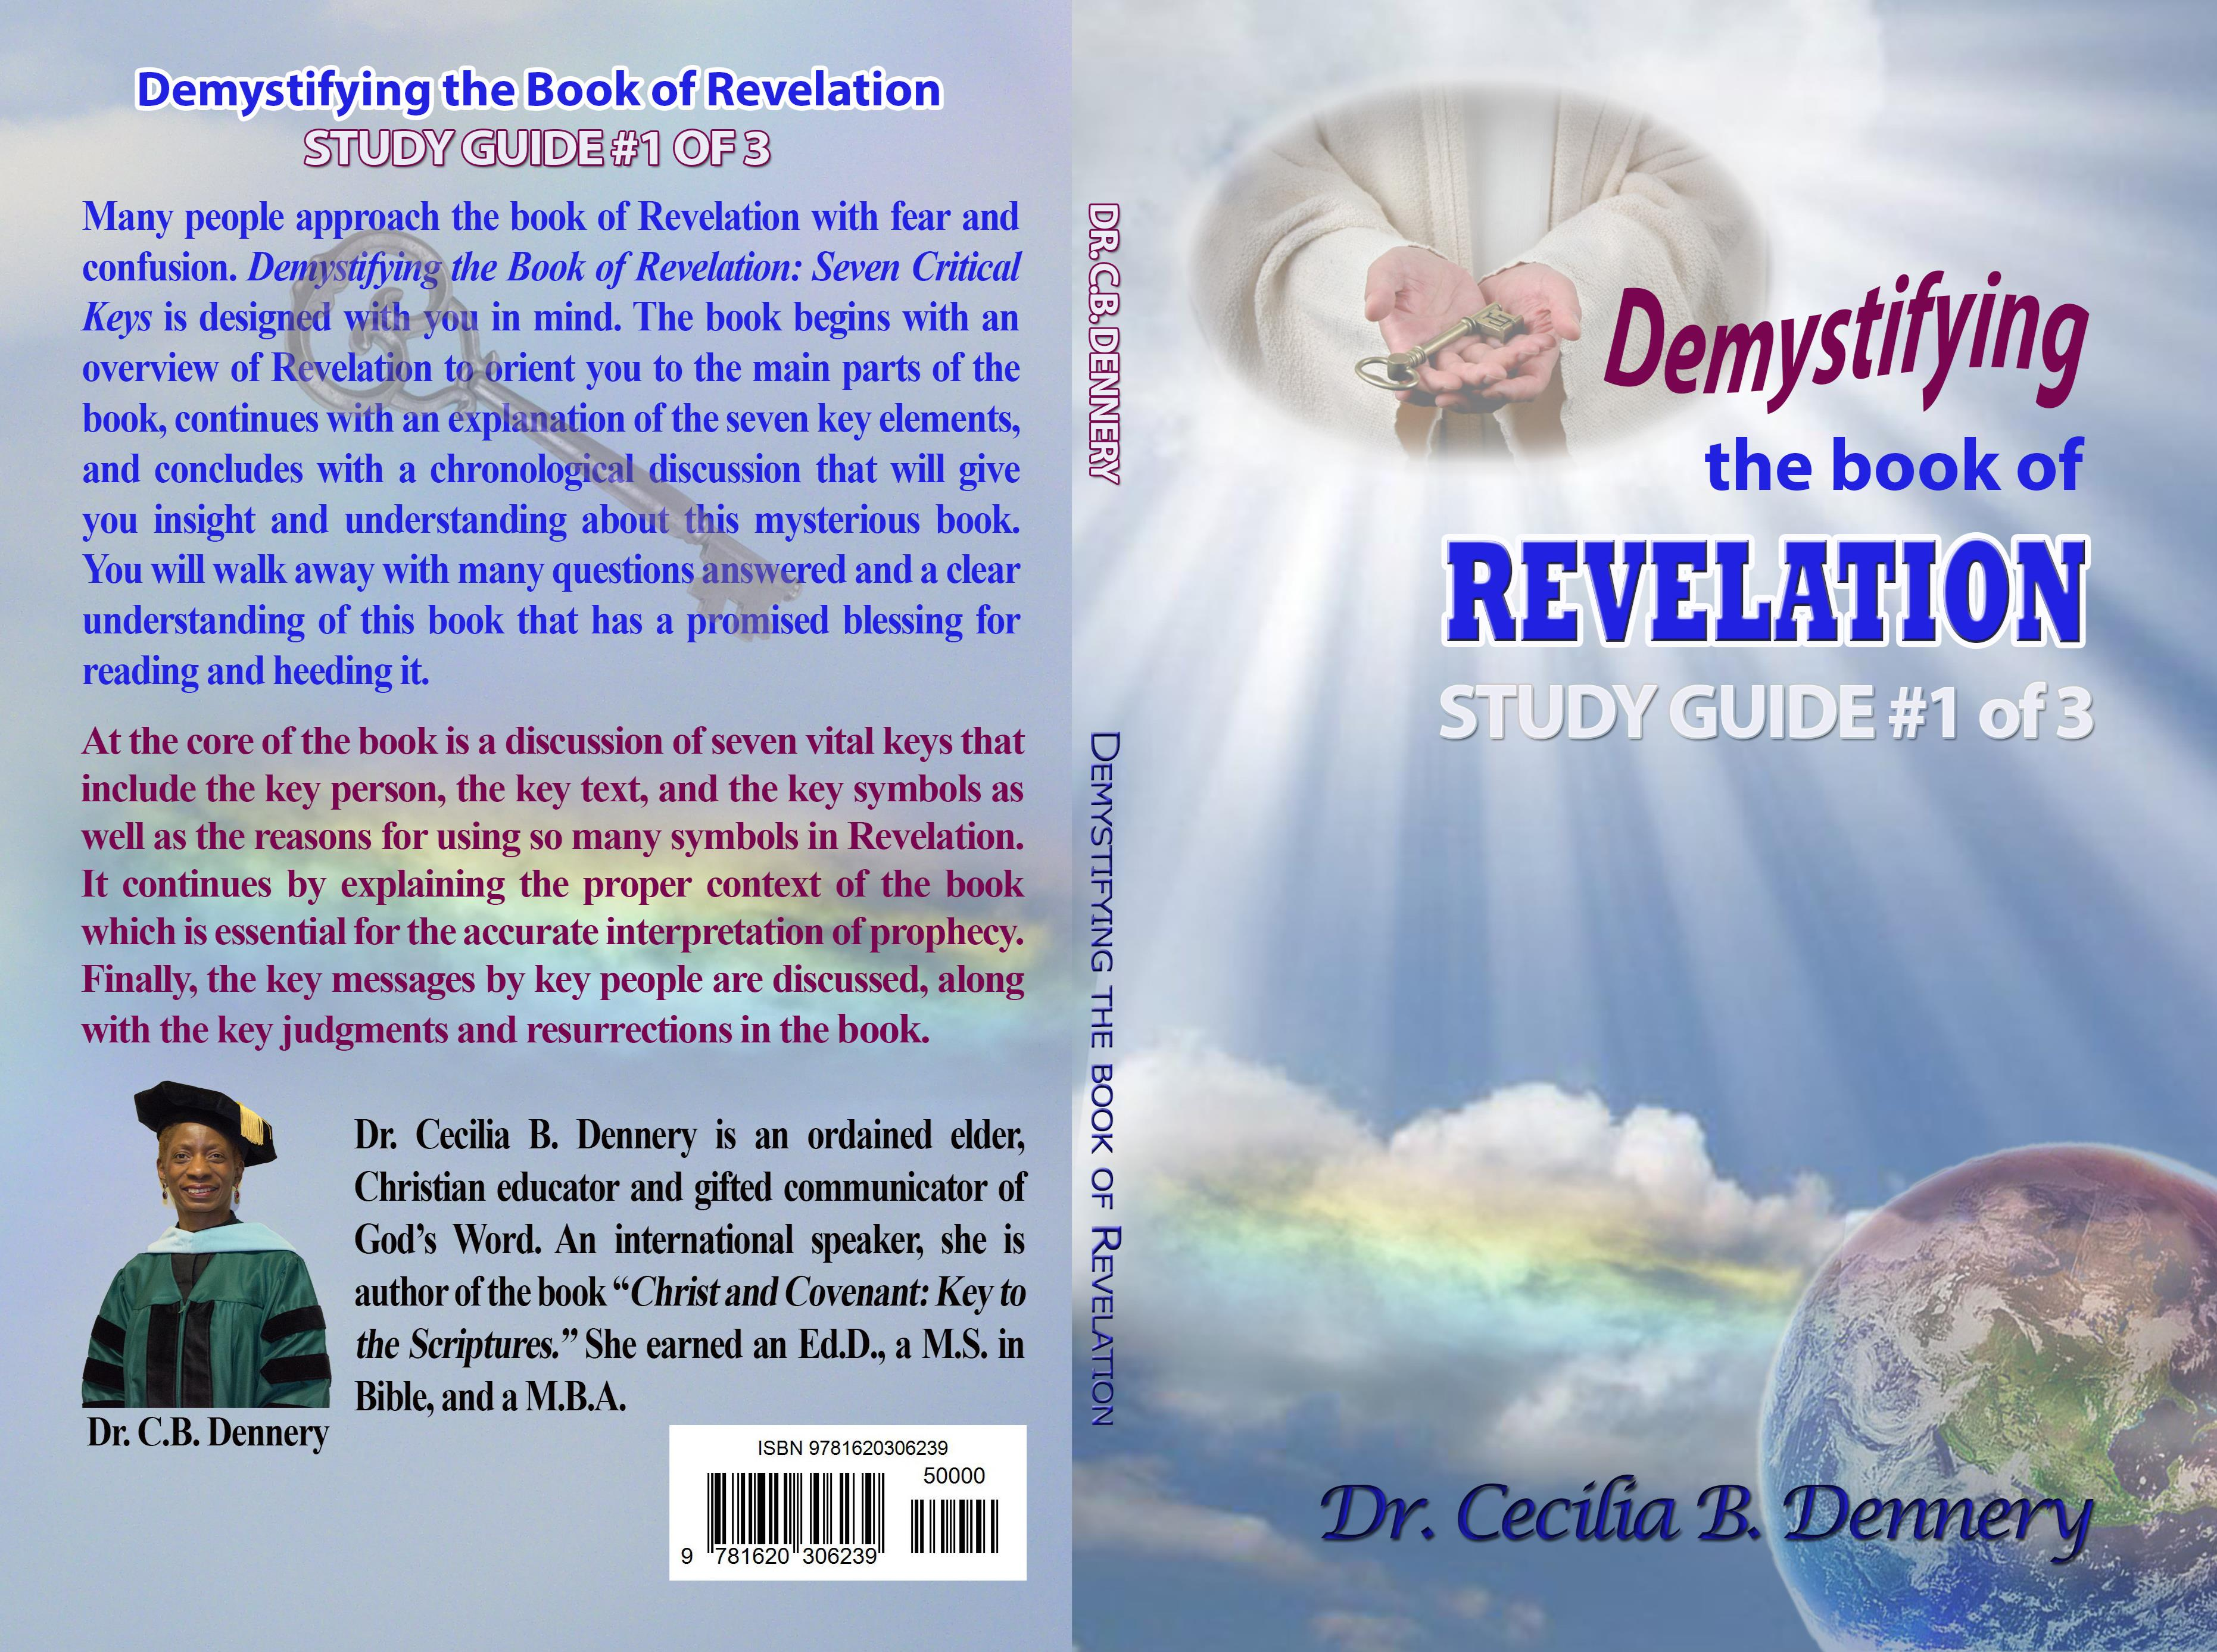 Demystifying the Book of Revelation - Study Guide #1 of 3 cover image